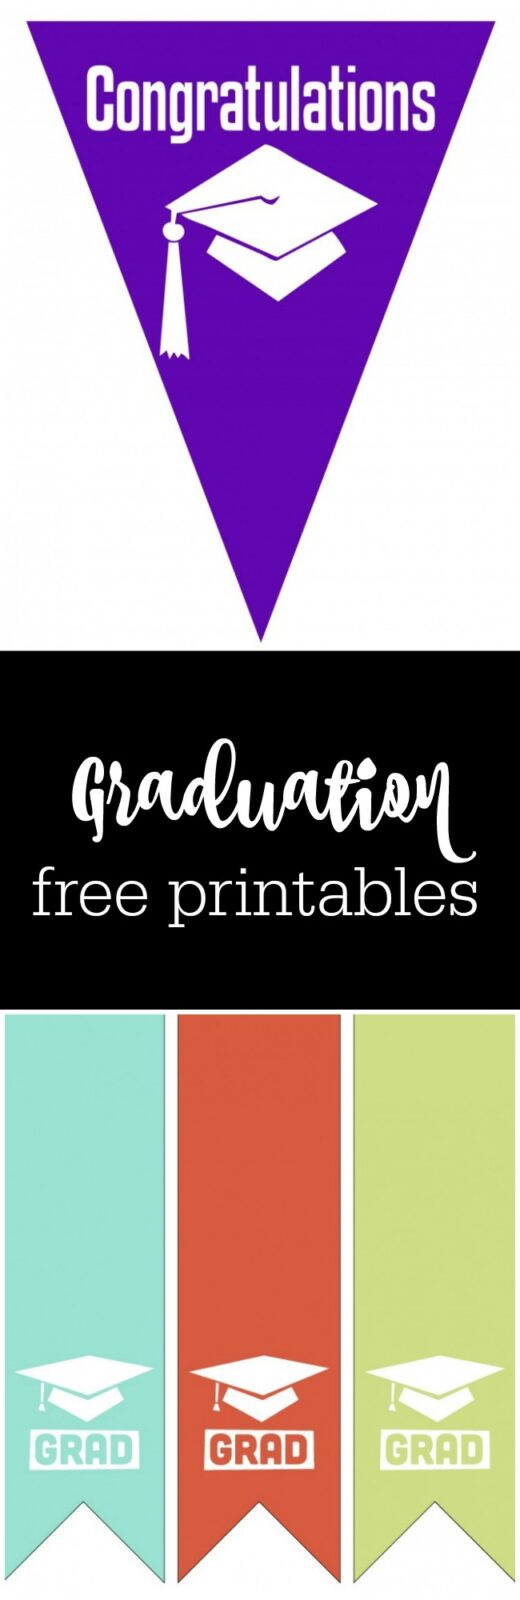 free graduation printables with cute options for kindergarten graduation curated by The Party Teacher